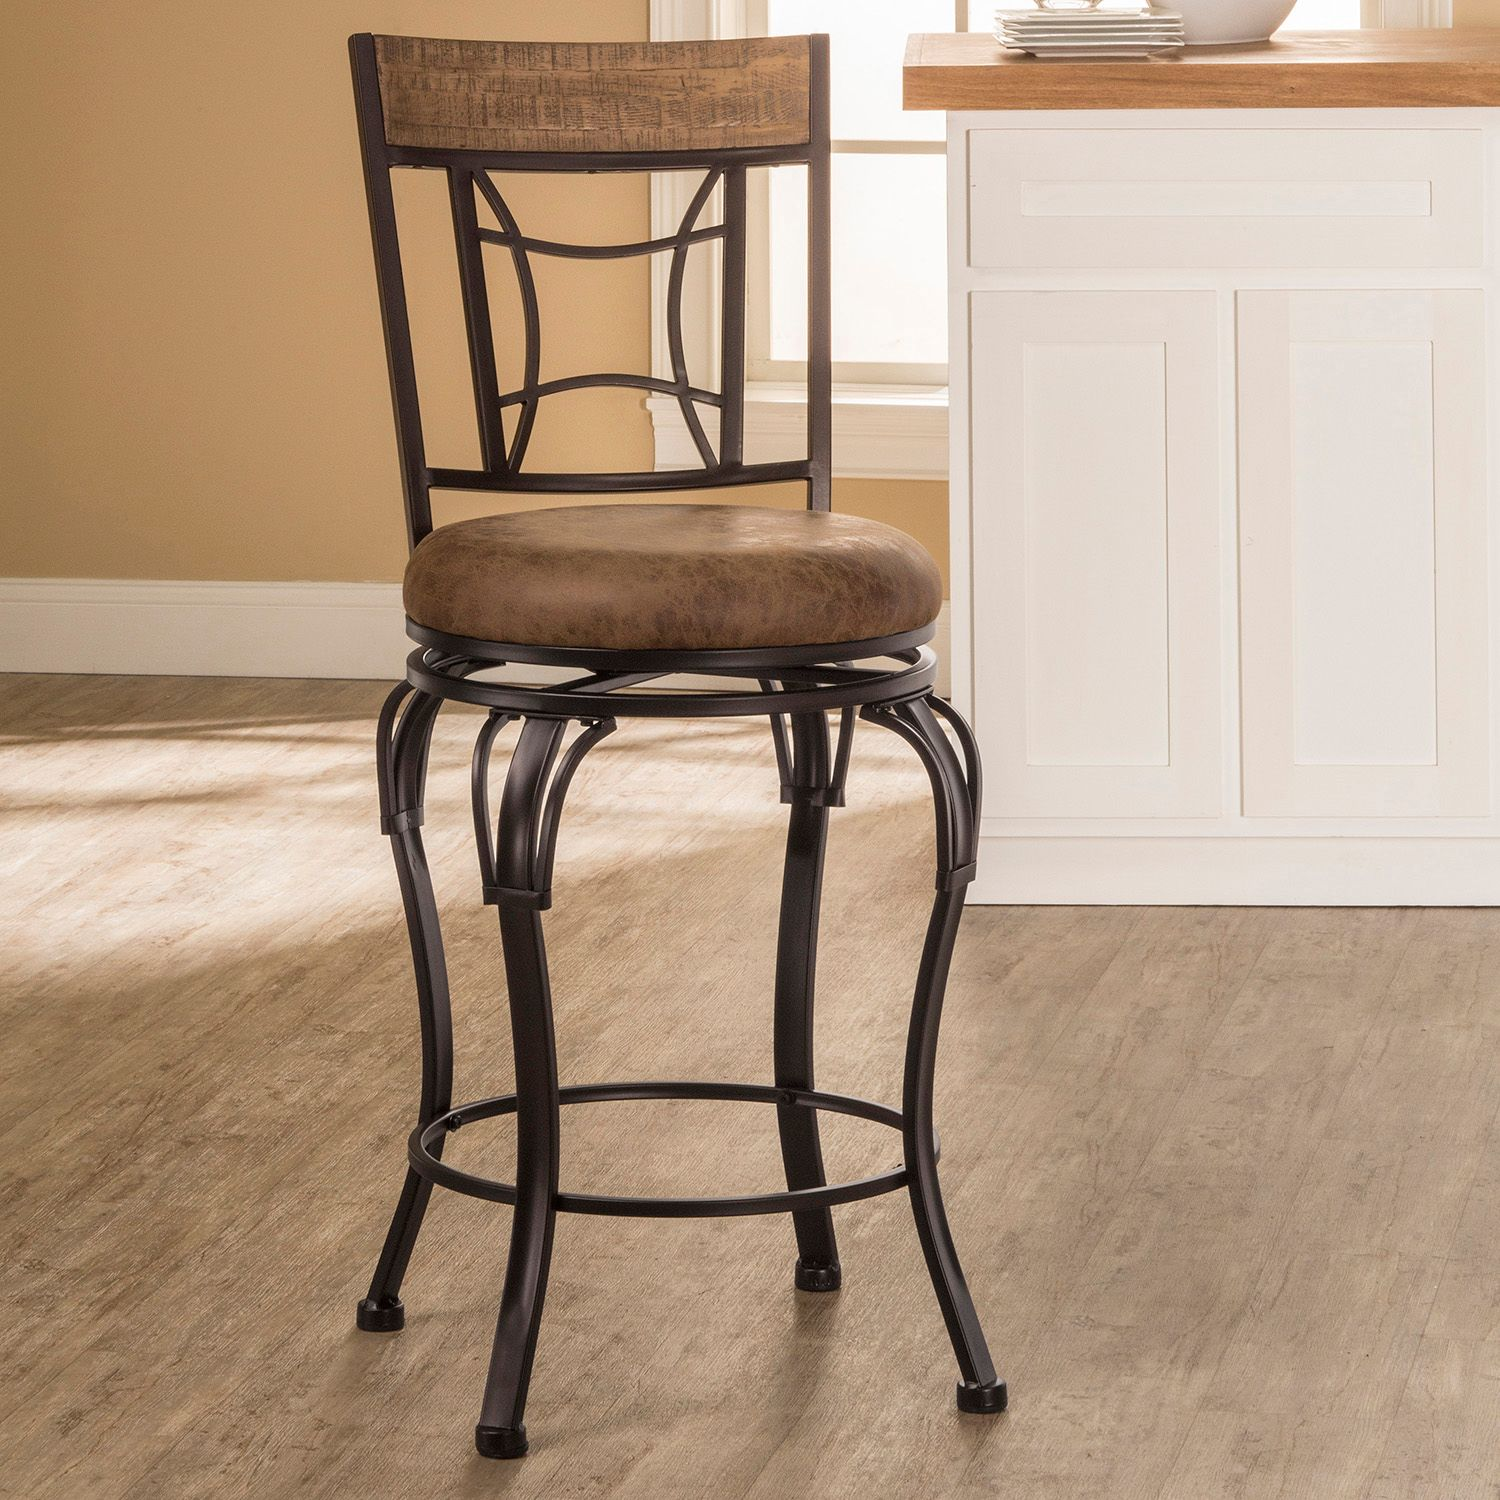 Portland Swivel Counter Stool & Counter Stools Indoor Stools - Chairs Furniture | Kohlu0027s islam-shia.org